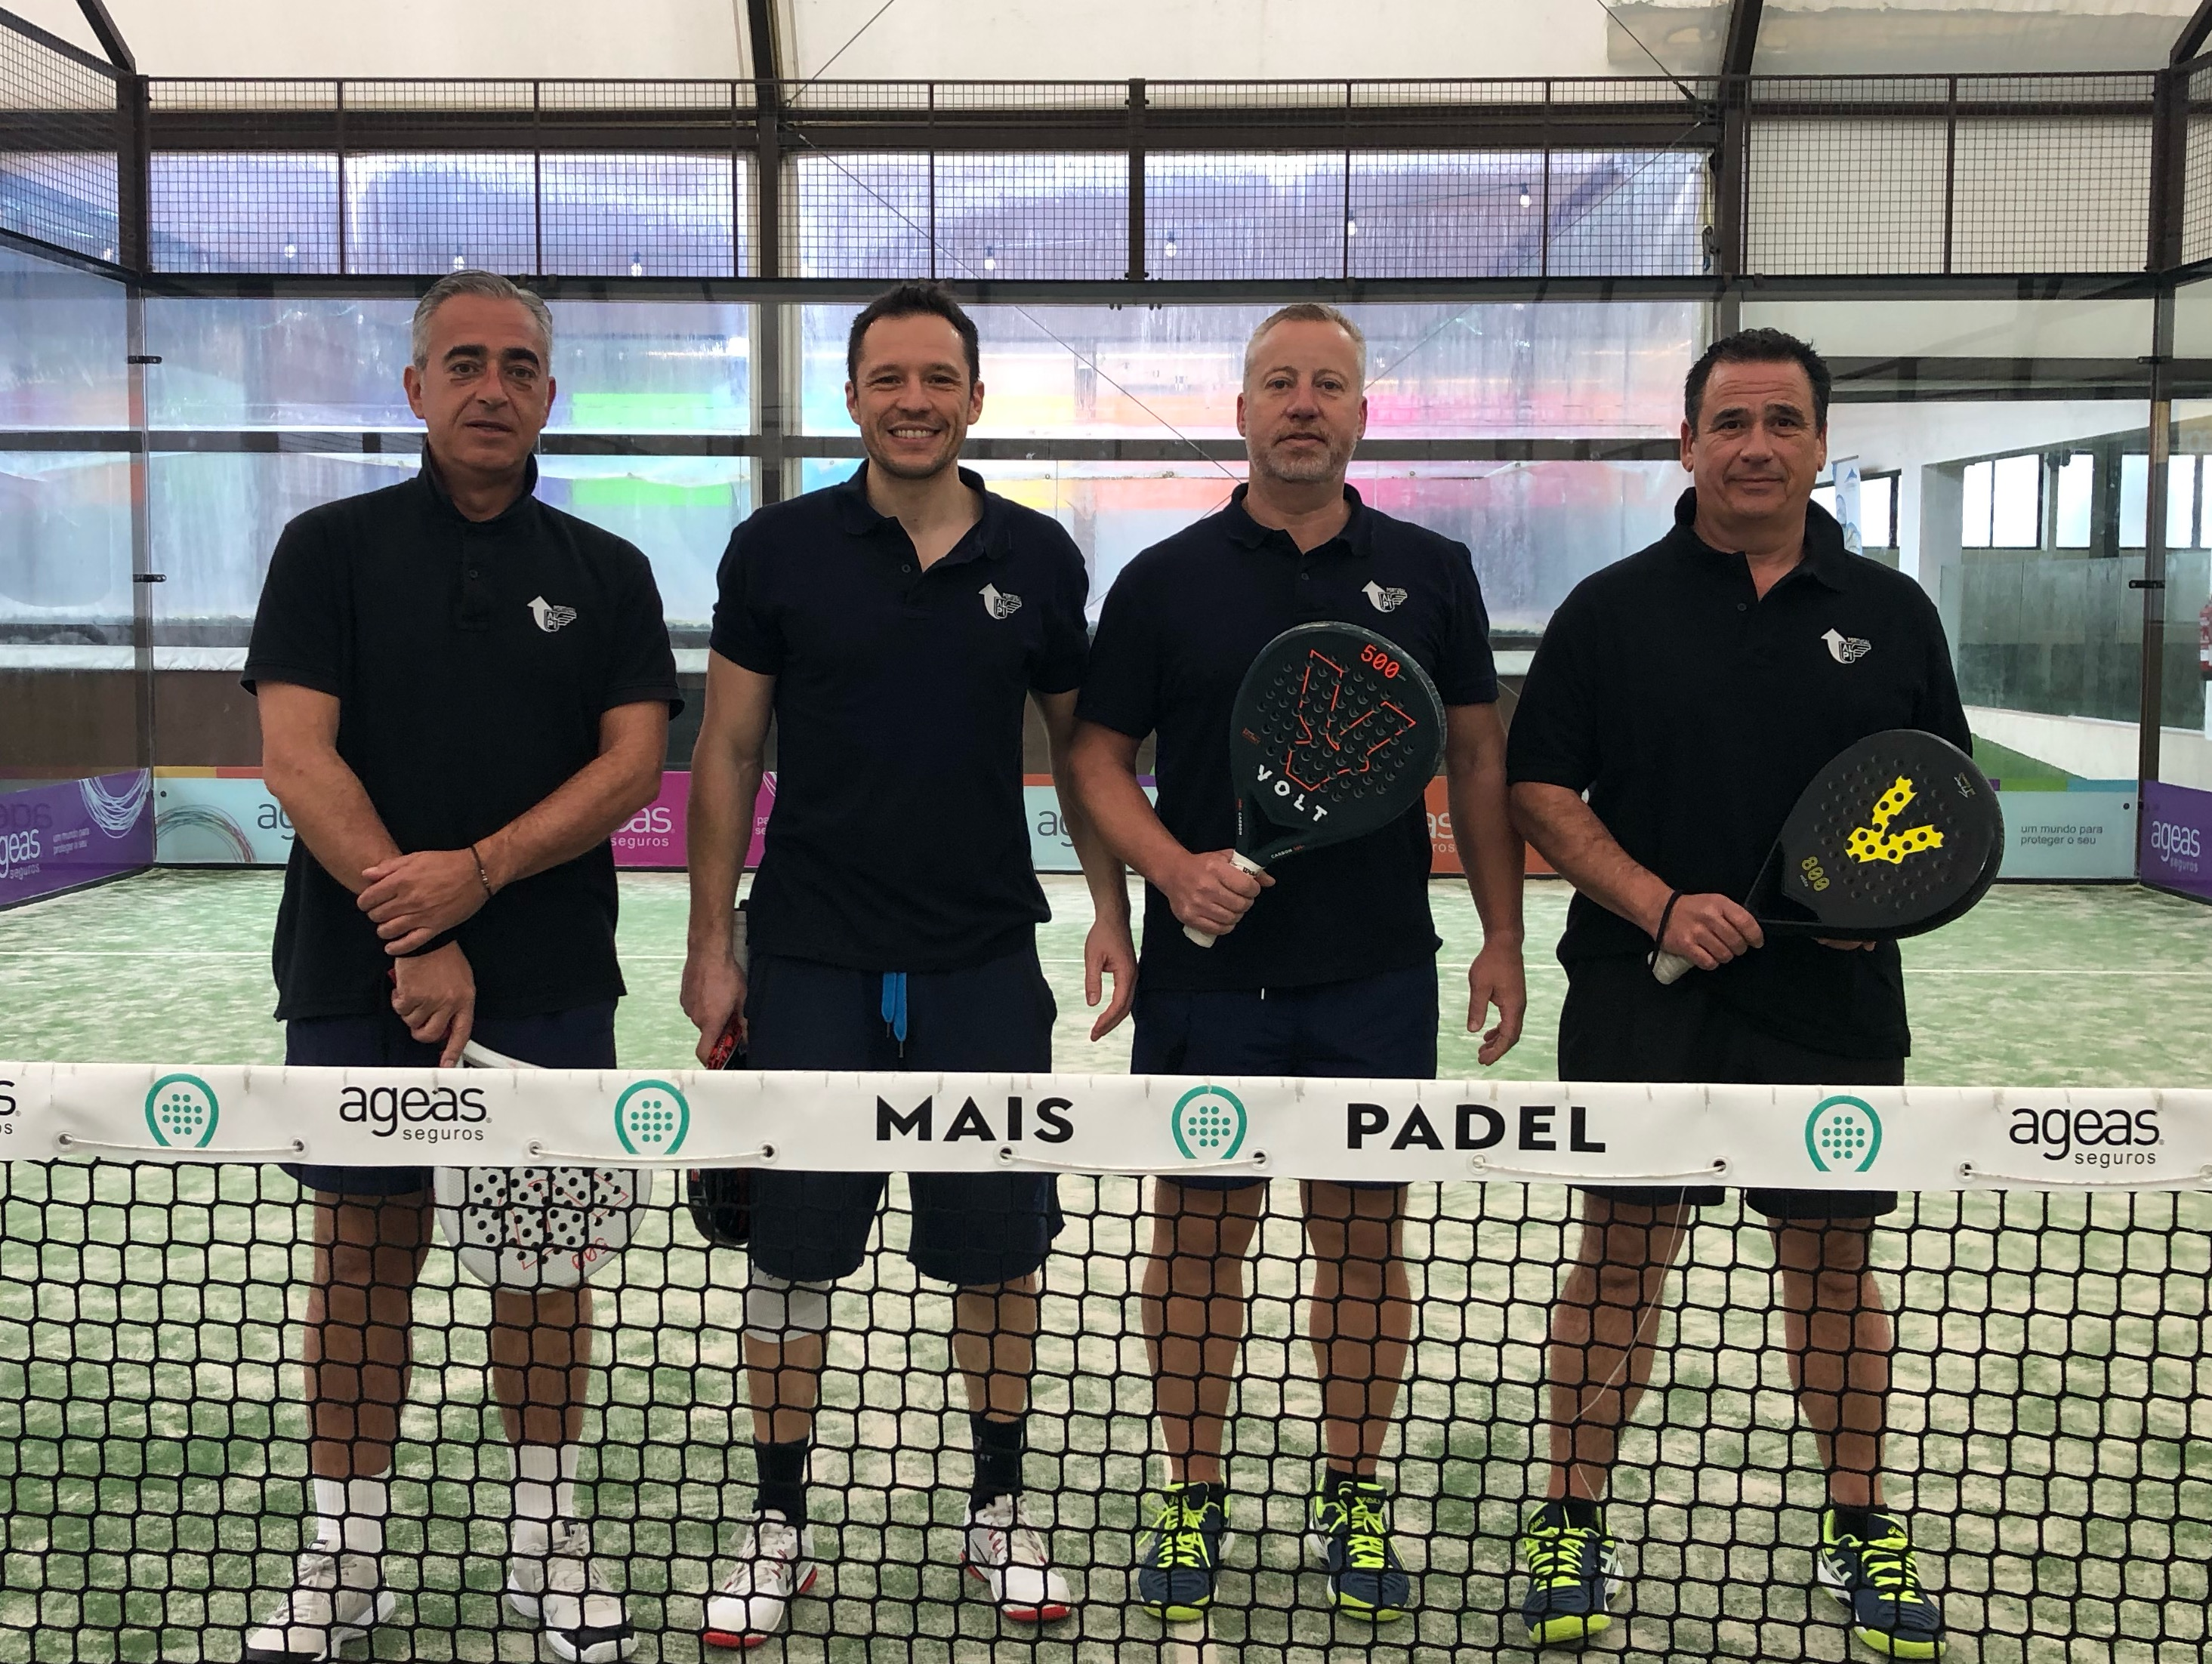 Alpi Padel Team